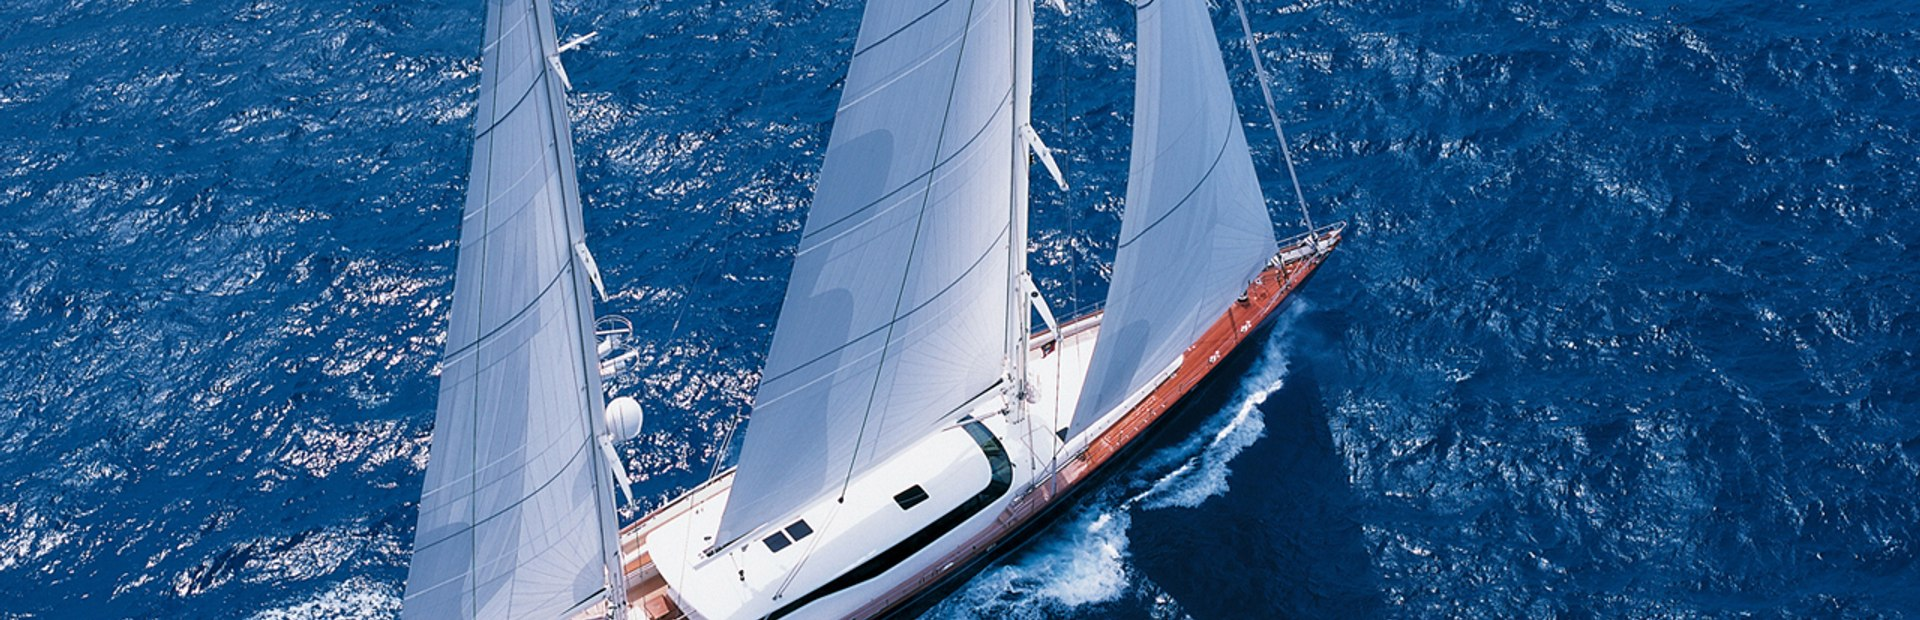 Aerial photo of Perini Navi yacht on charter vacation in the Mediterannean